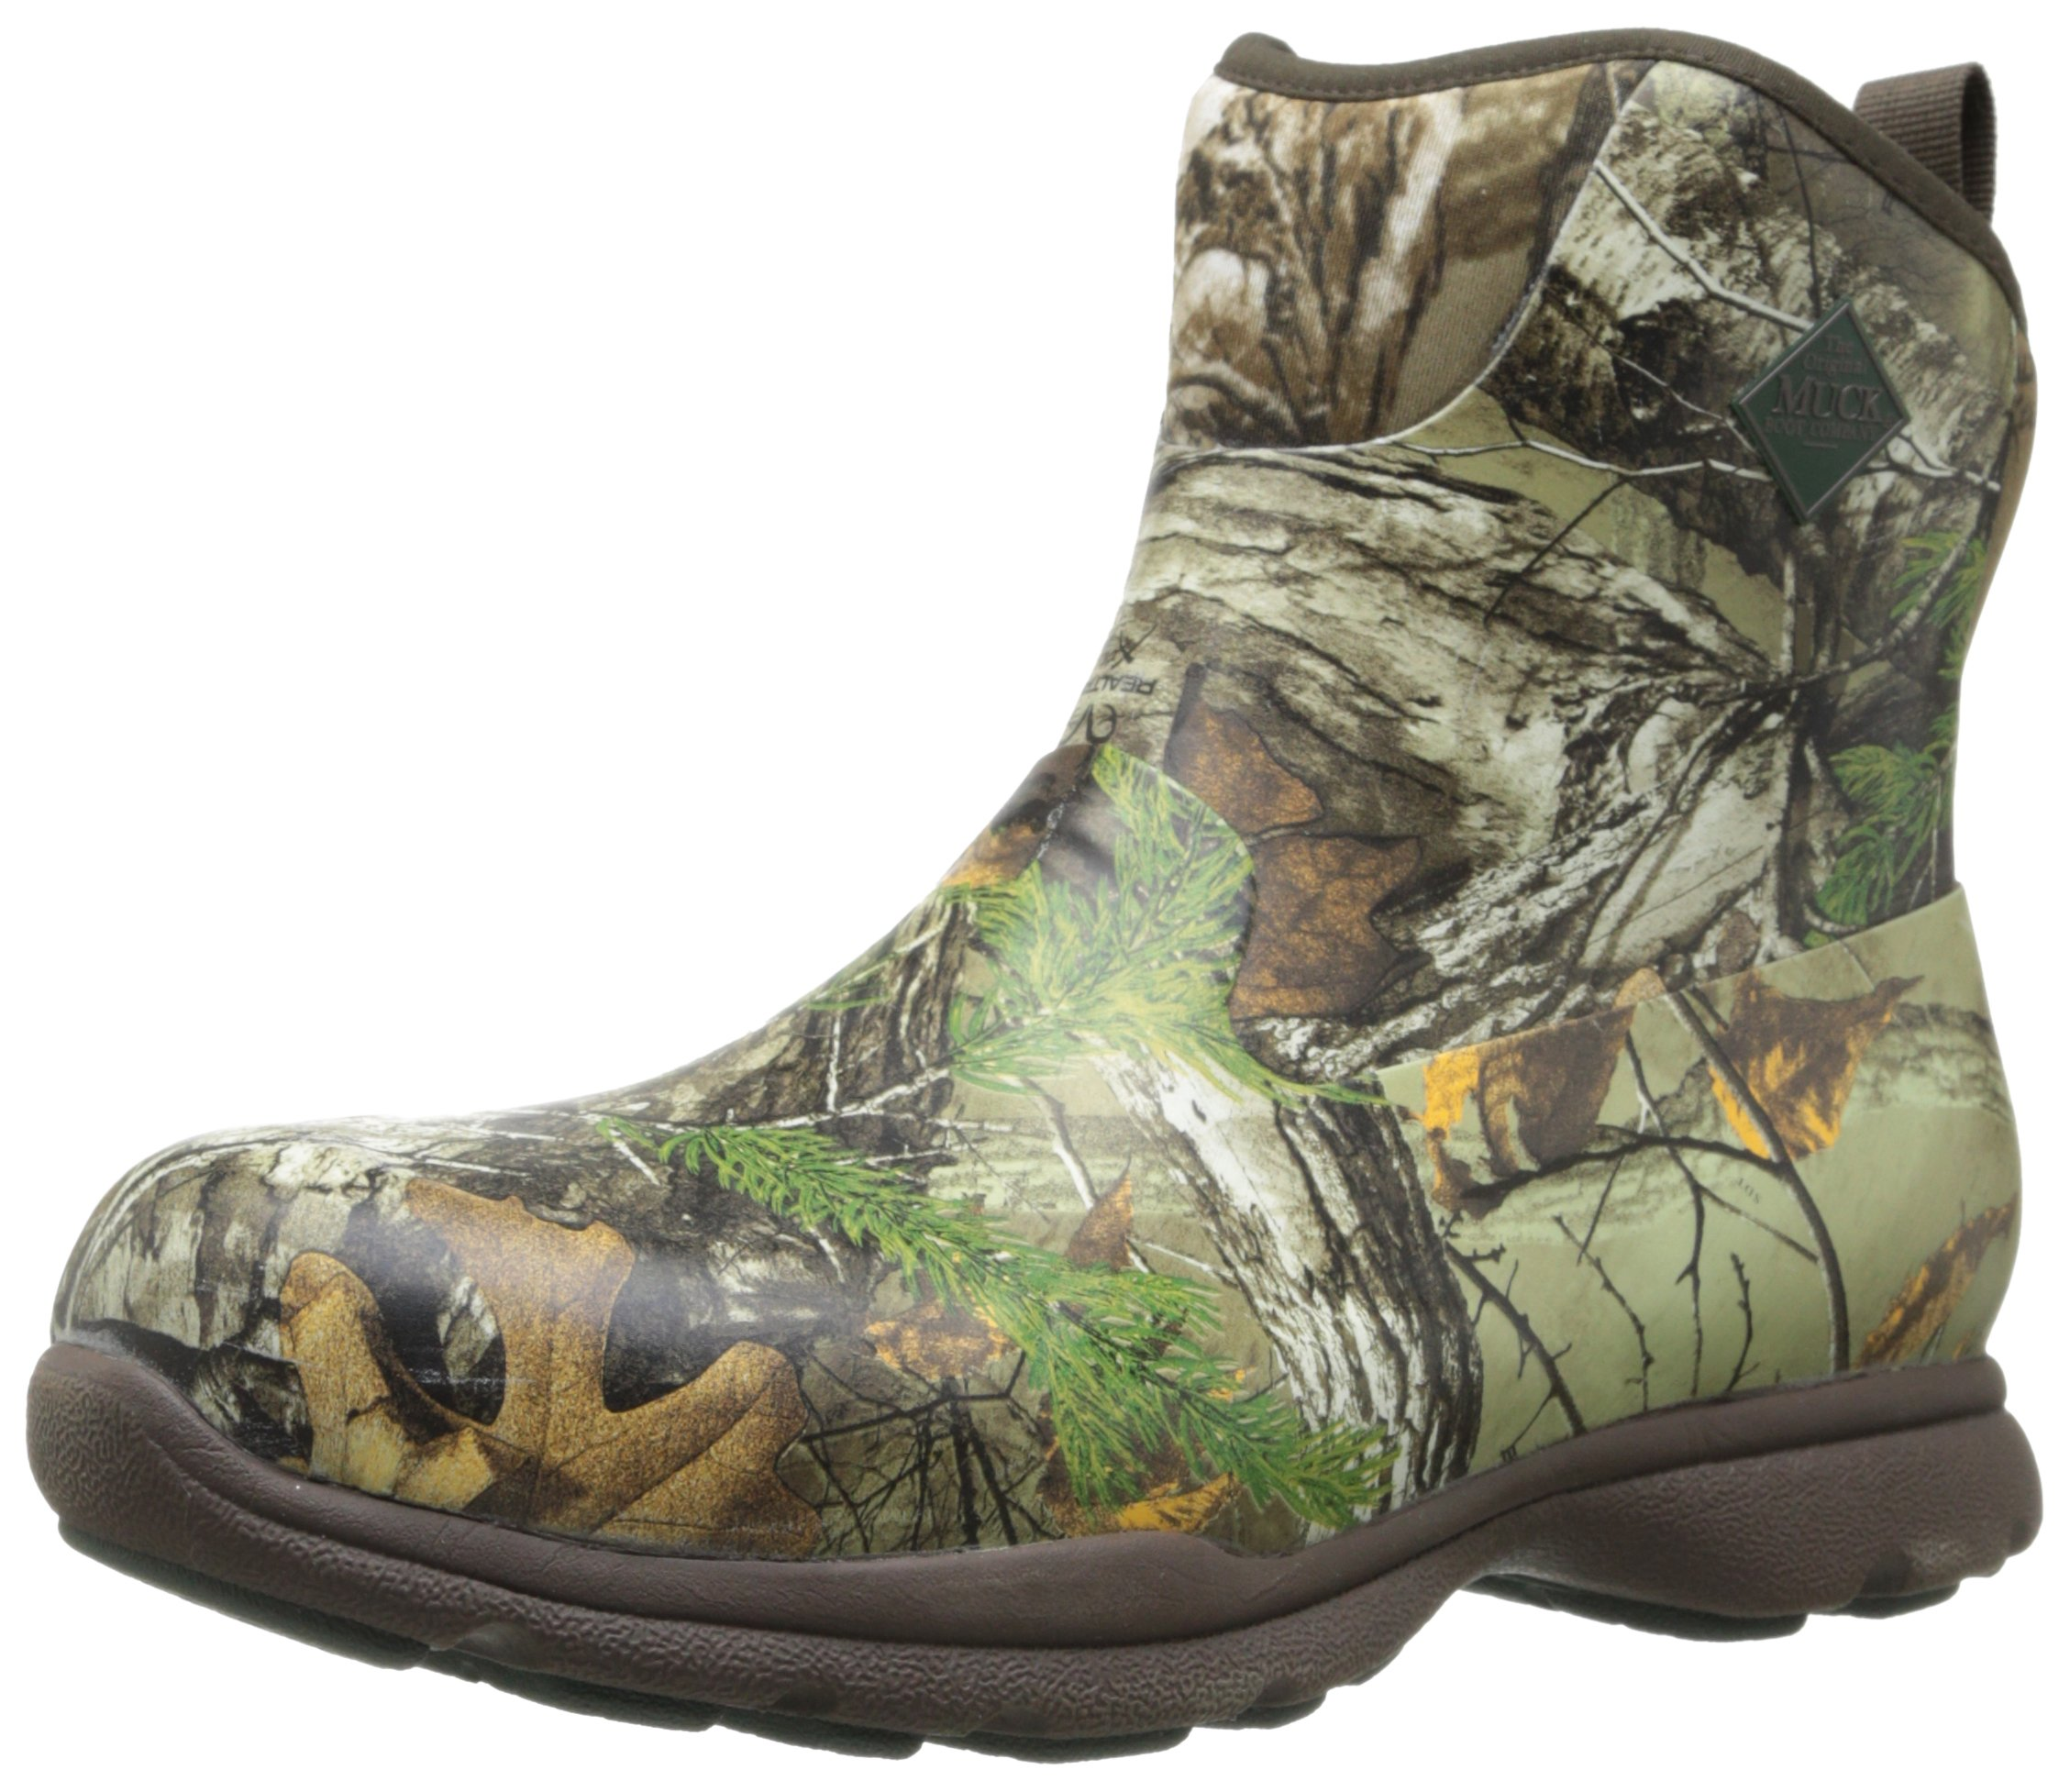 Muck Boot Men's Excursion Pro Mid Realtree Xtra  Outdoor Boot - 10 D(M) US by Muck Boot